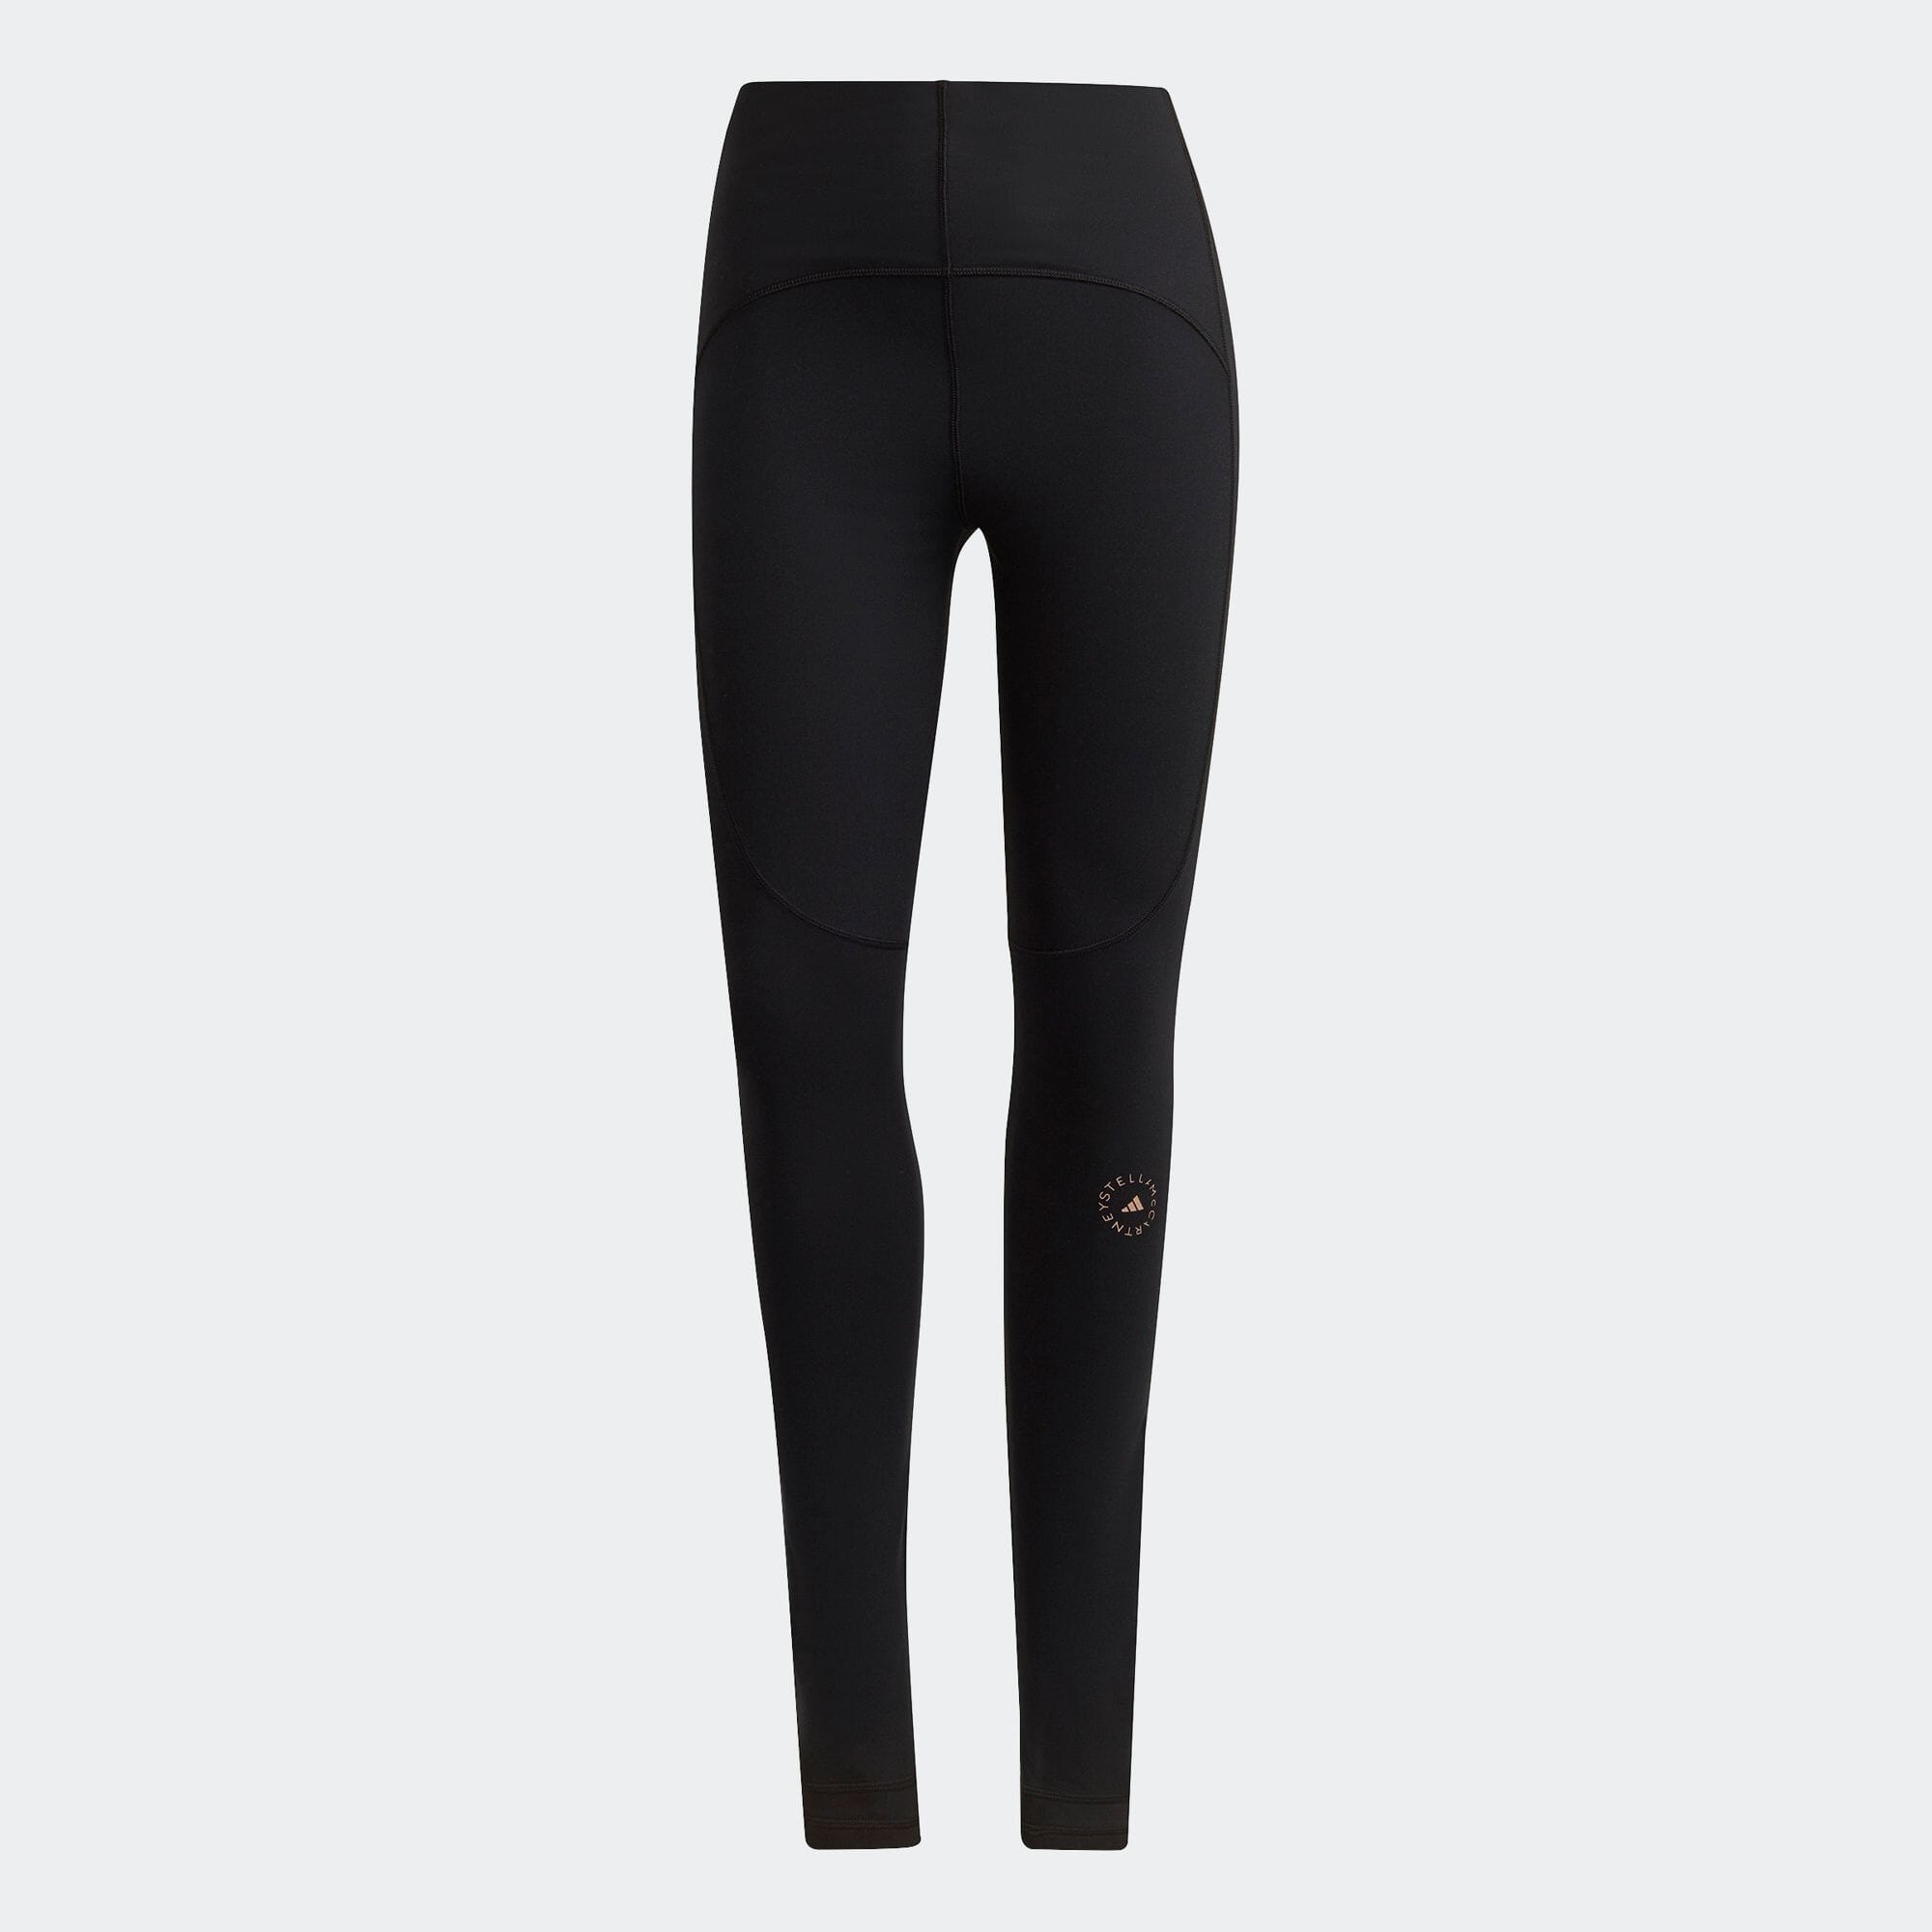 adidas by Stella McCartney TRUESTRENGTH ヨガタイツ / adidas by Stella McCartney TrueStrength Yoga Tights